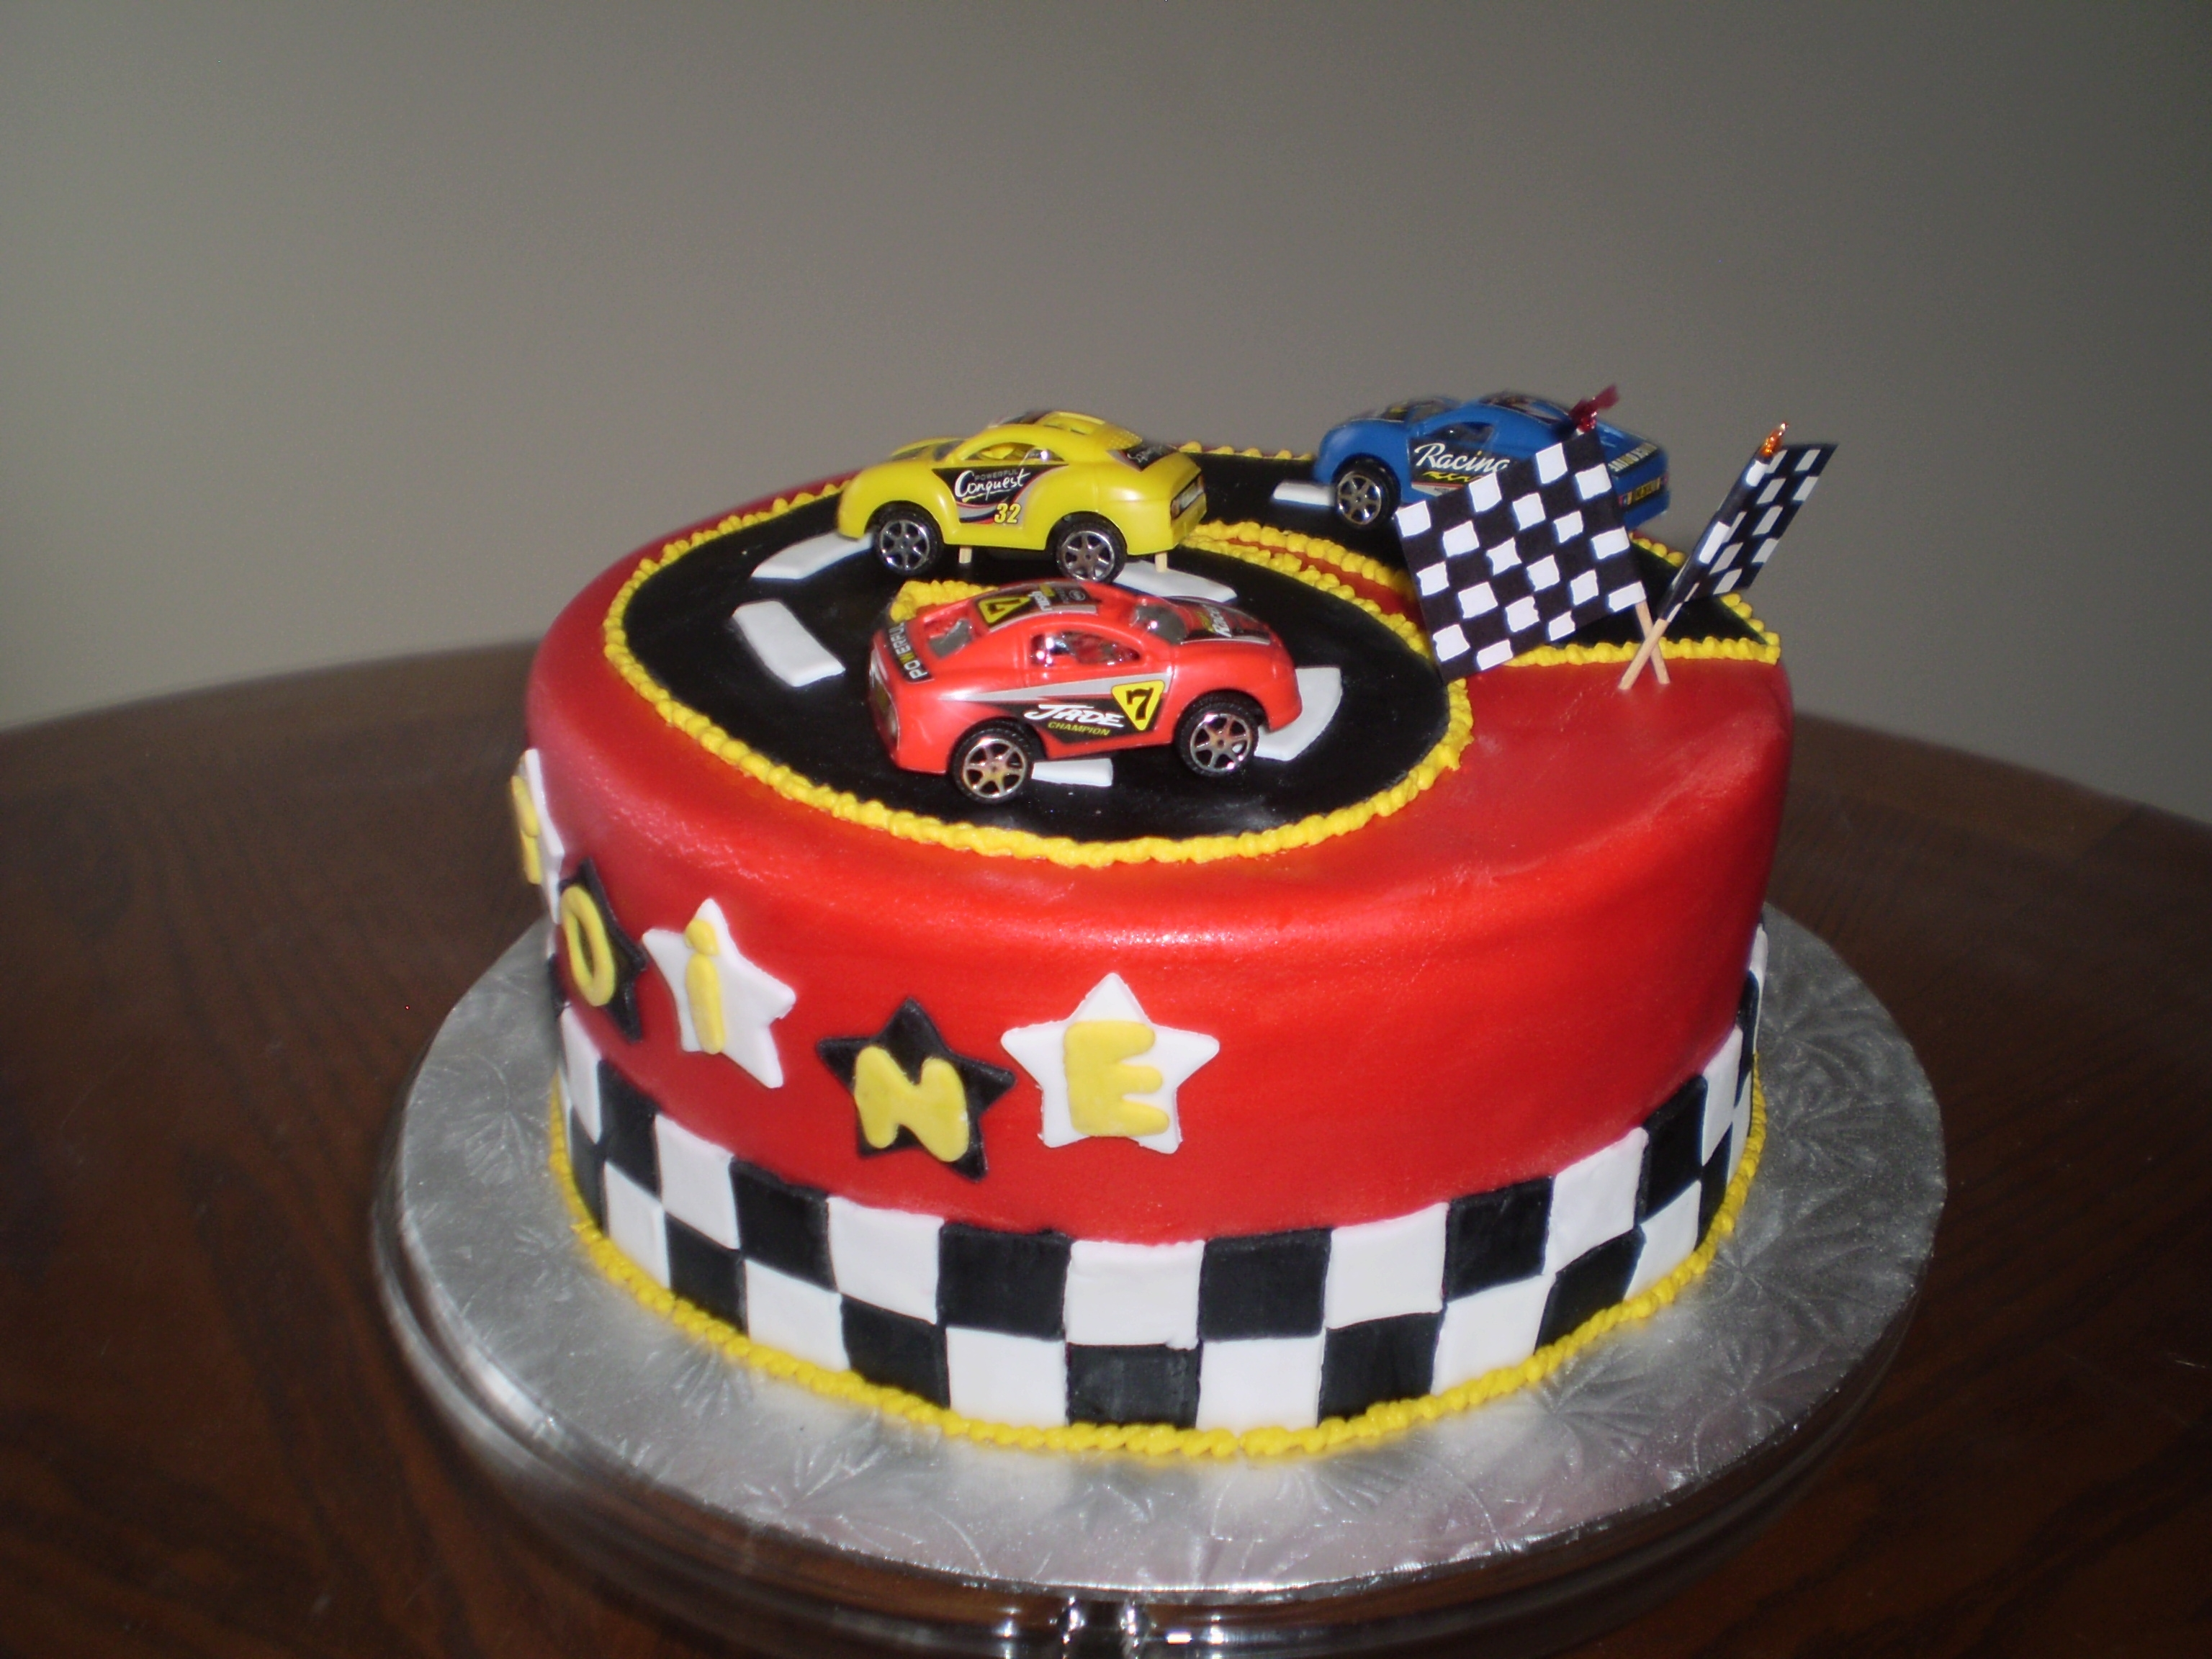 I made this race car cake for my nephew 6th birthday cakecentral i made this race car cake for my nephew 6th birthday baditri Choice Image